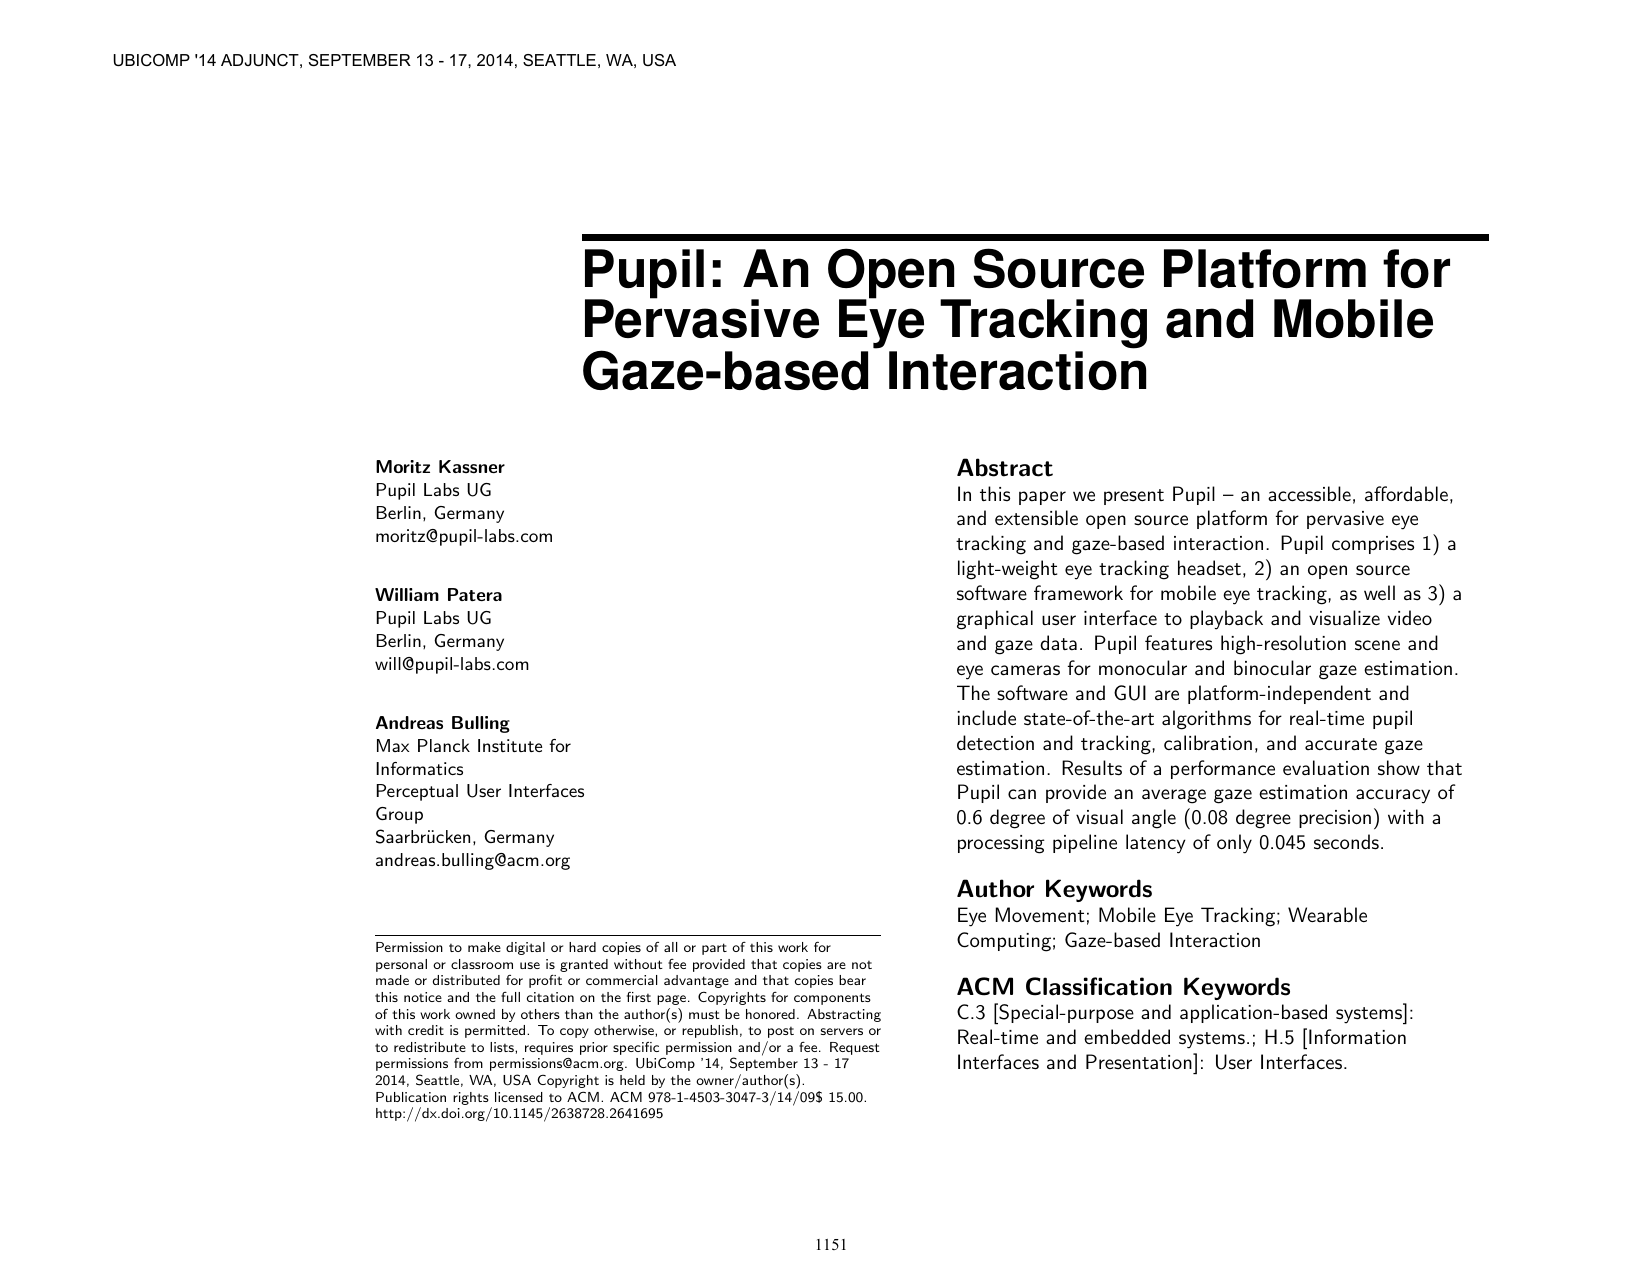 Pupil: an open source platform for pervasive eye tracking and mobile gaze-based interaction